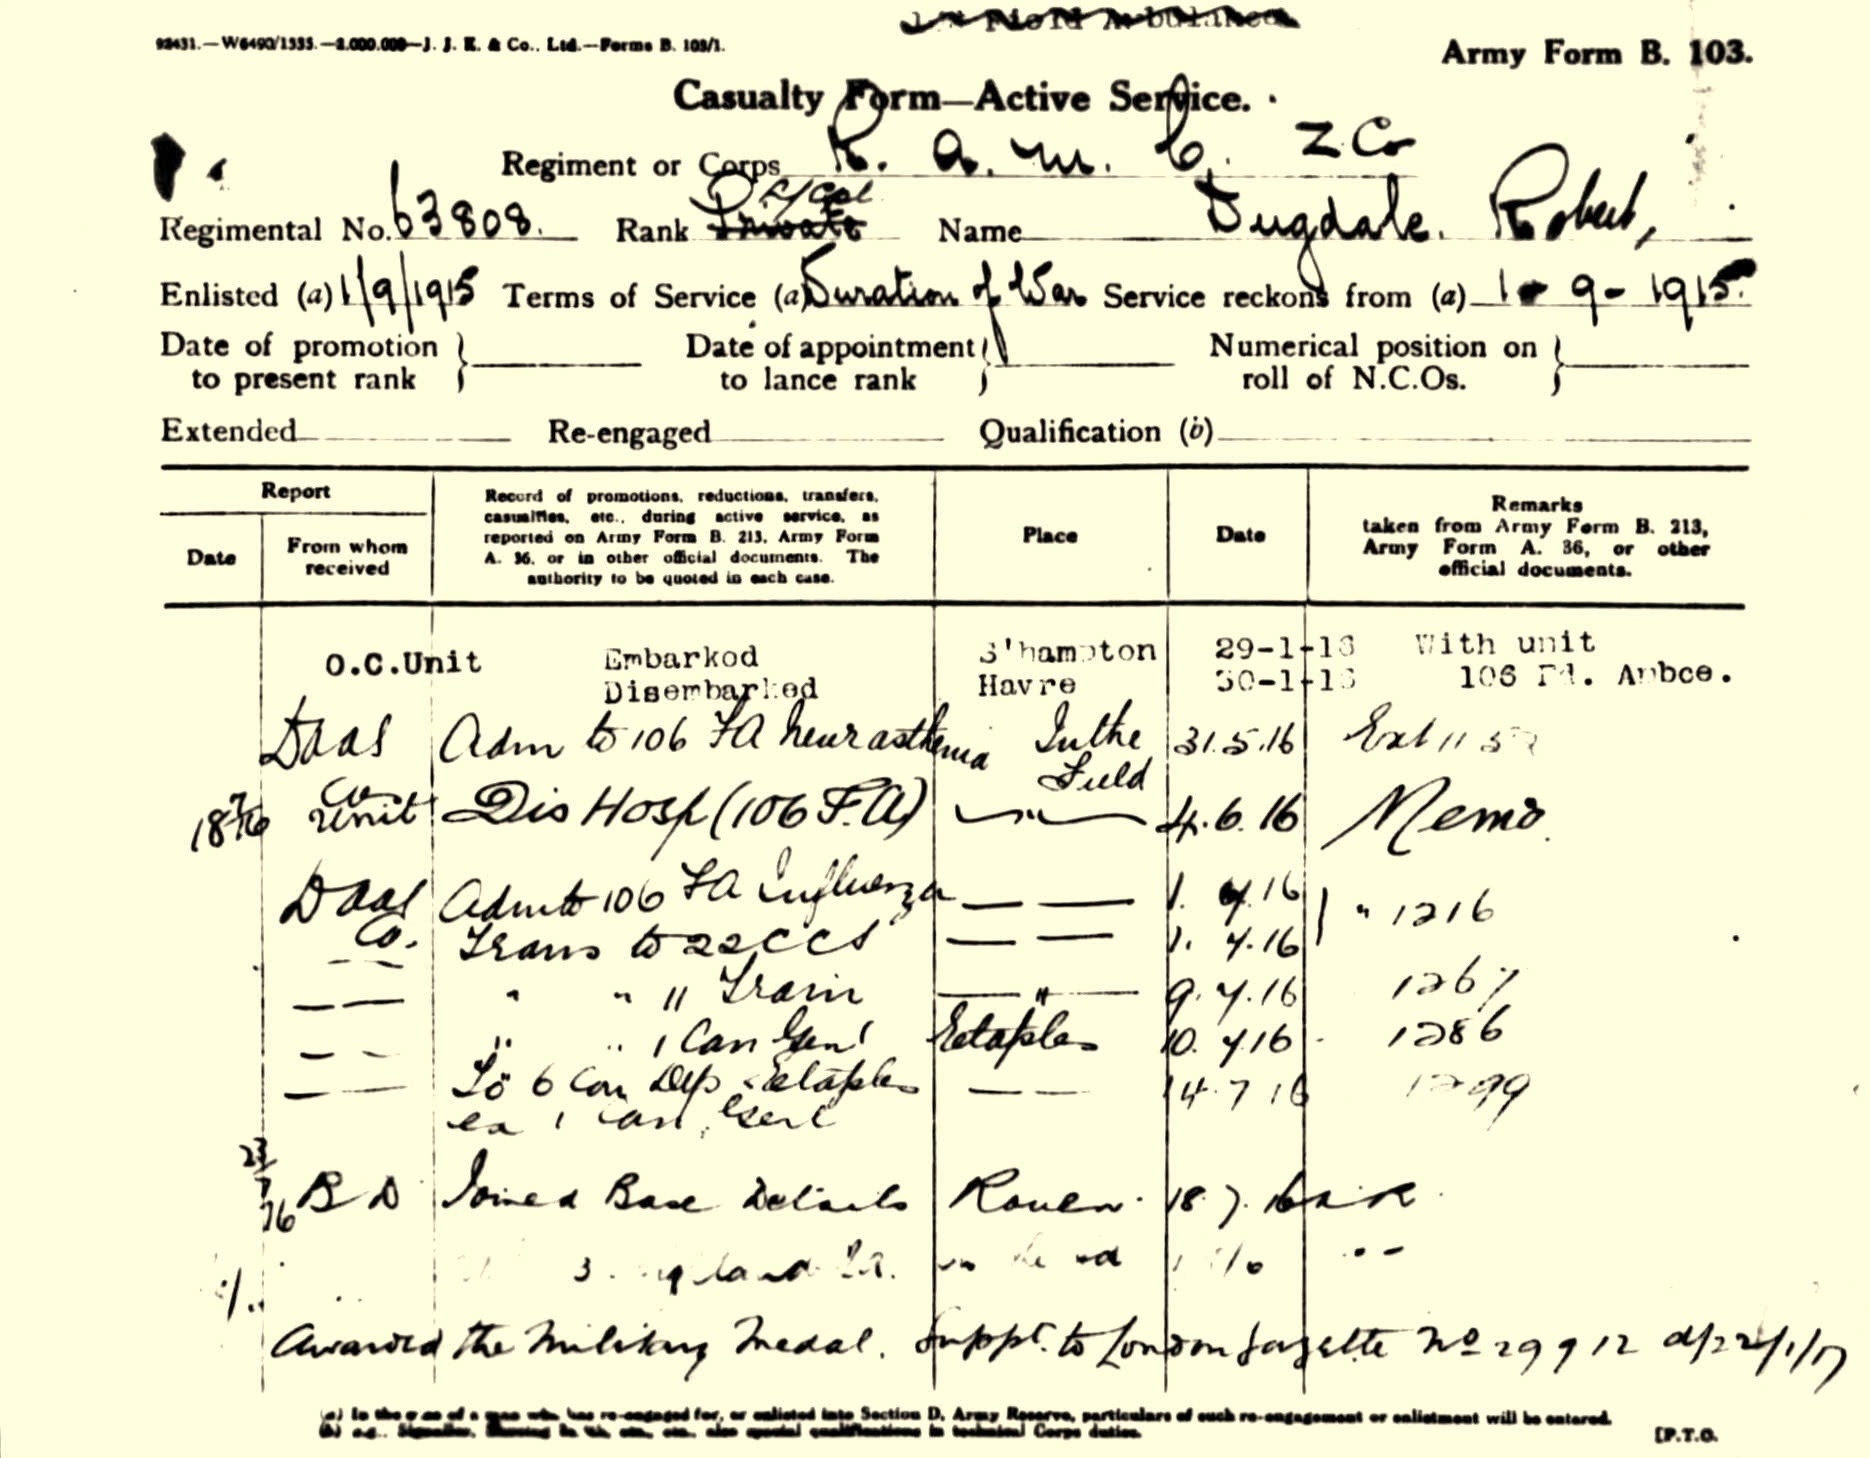 Casualty Form from Robert Dugdale's Pension Record showing his admission to the Field Ambulance with neurasthenia